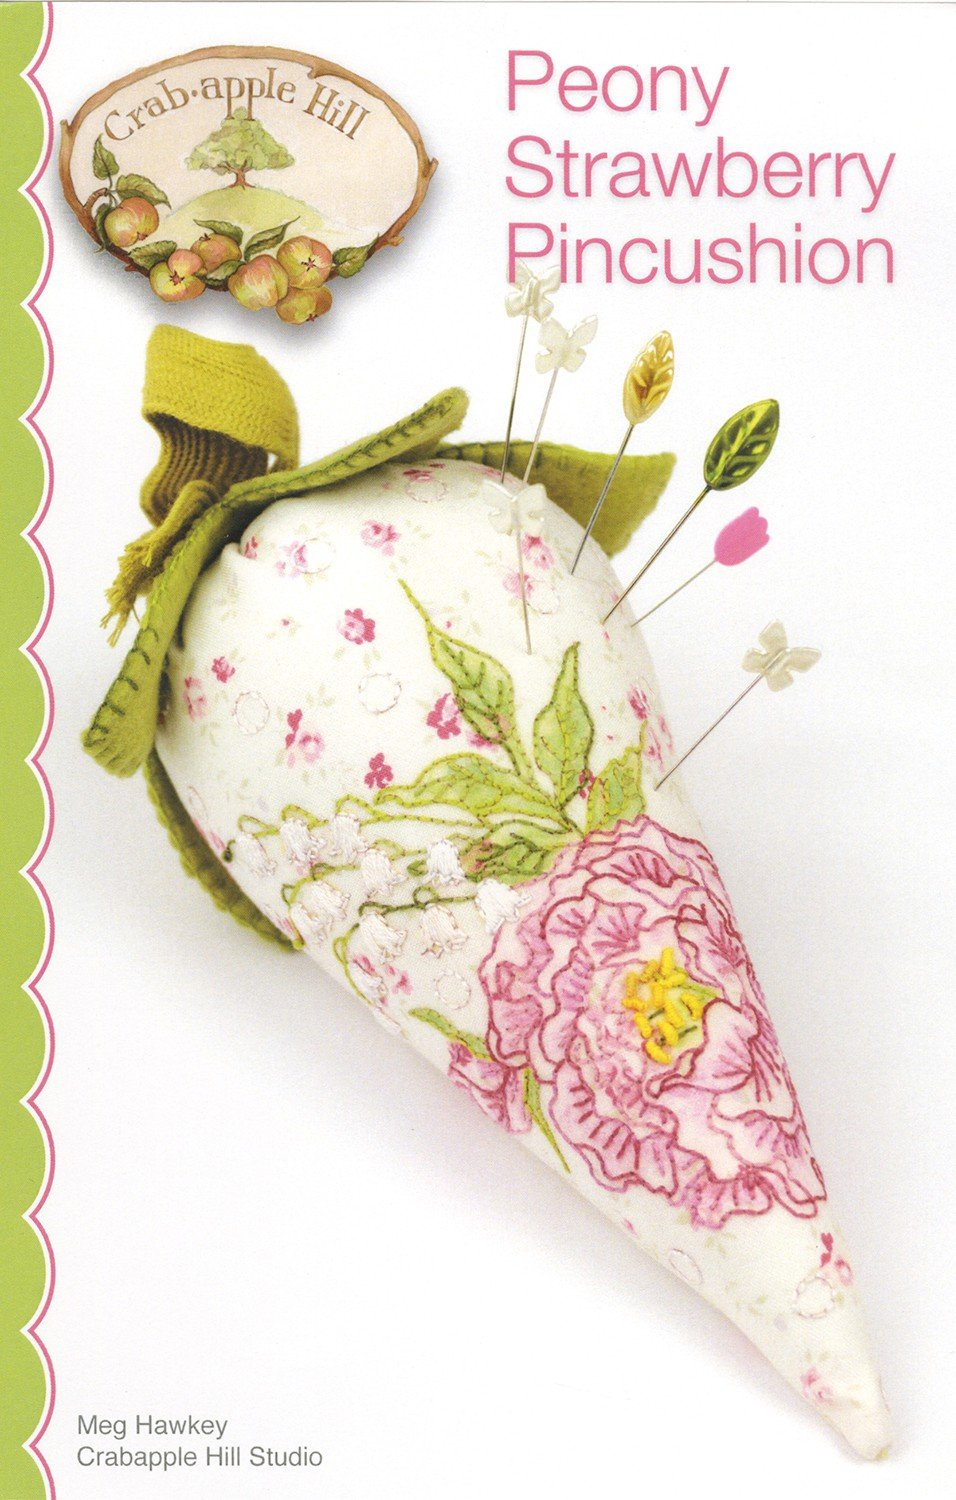 Peony Strawberry Pincushion